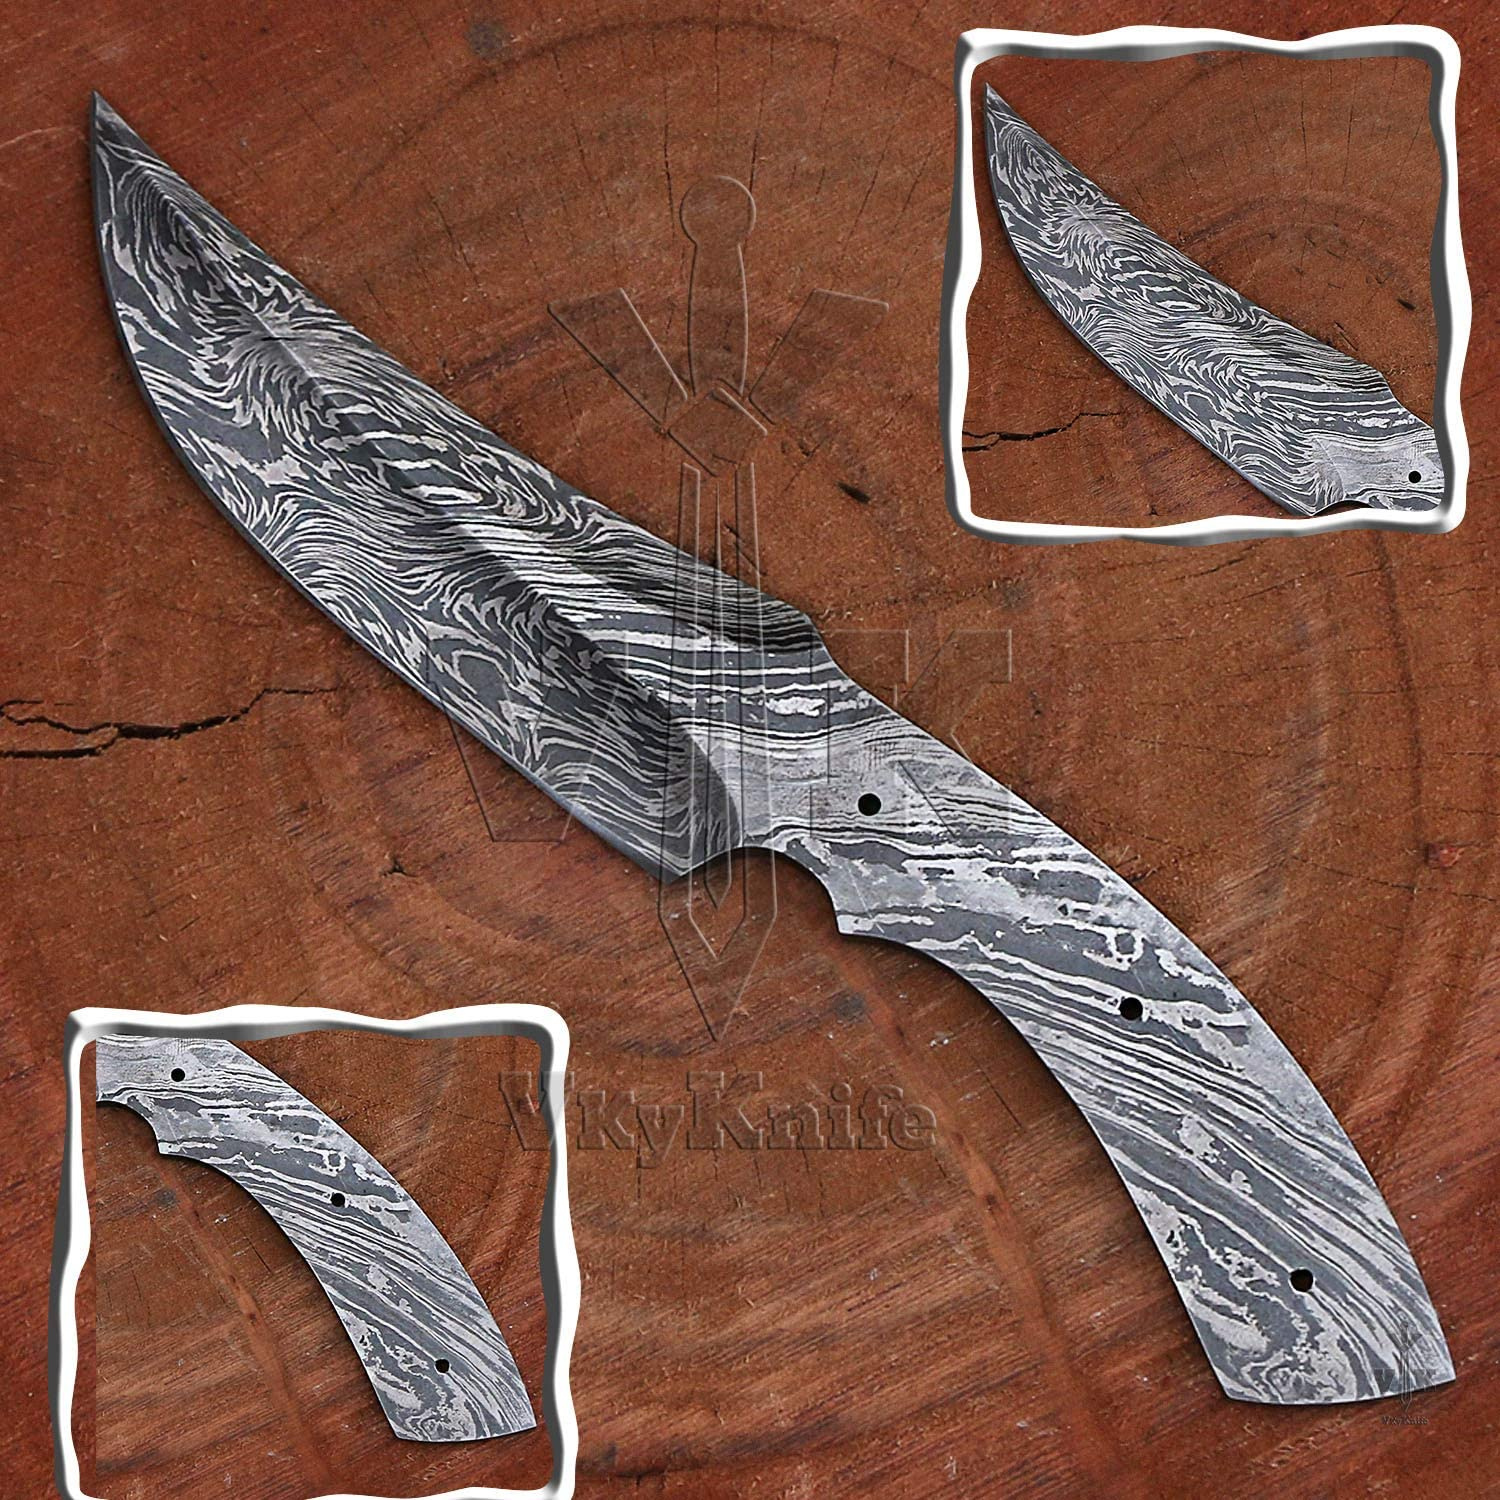 Amazon Com Handmade Damascus Steel Hunting Knife Blank Blade Fire Storm Pattern 9 5 Inches Vk2180 Sports Outdoors